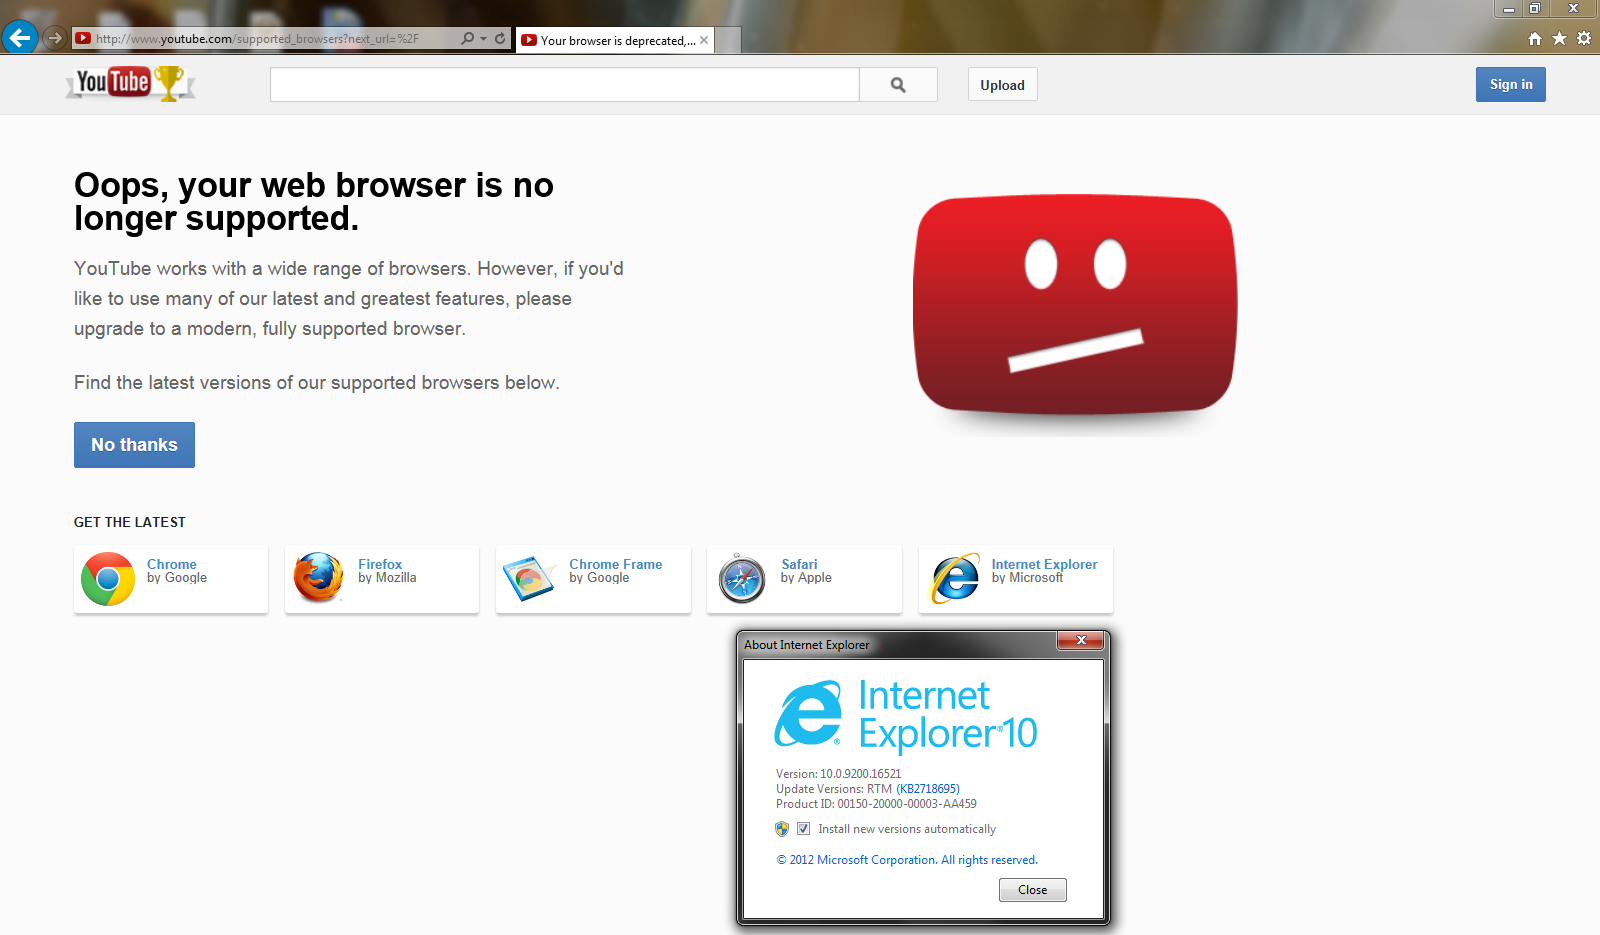 How To Upgrade To Internet Explorer 10 On Windows Xp